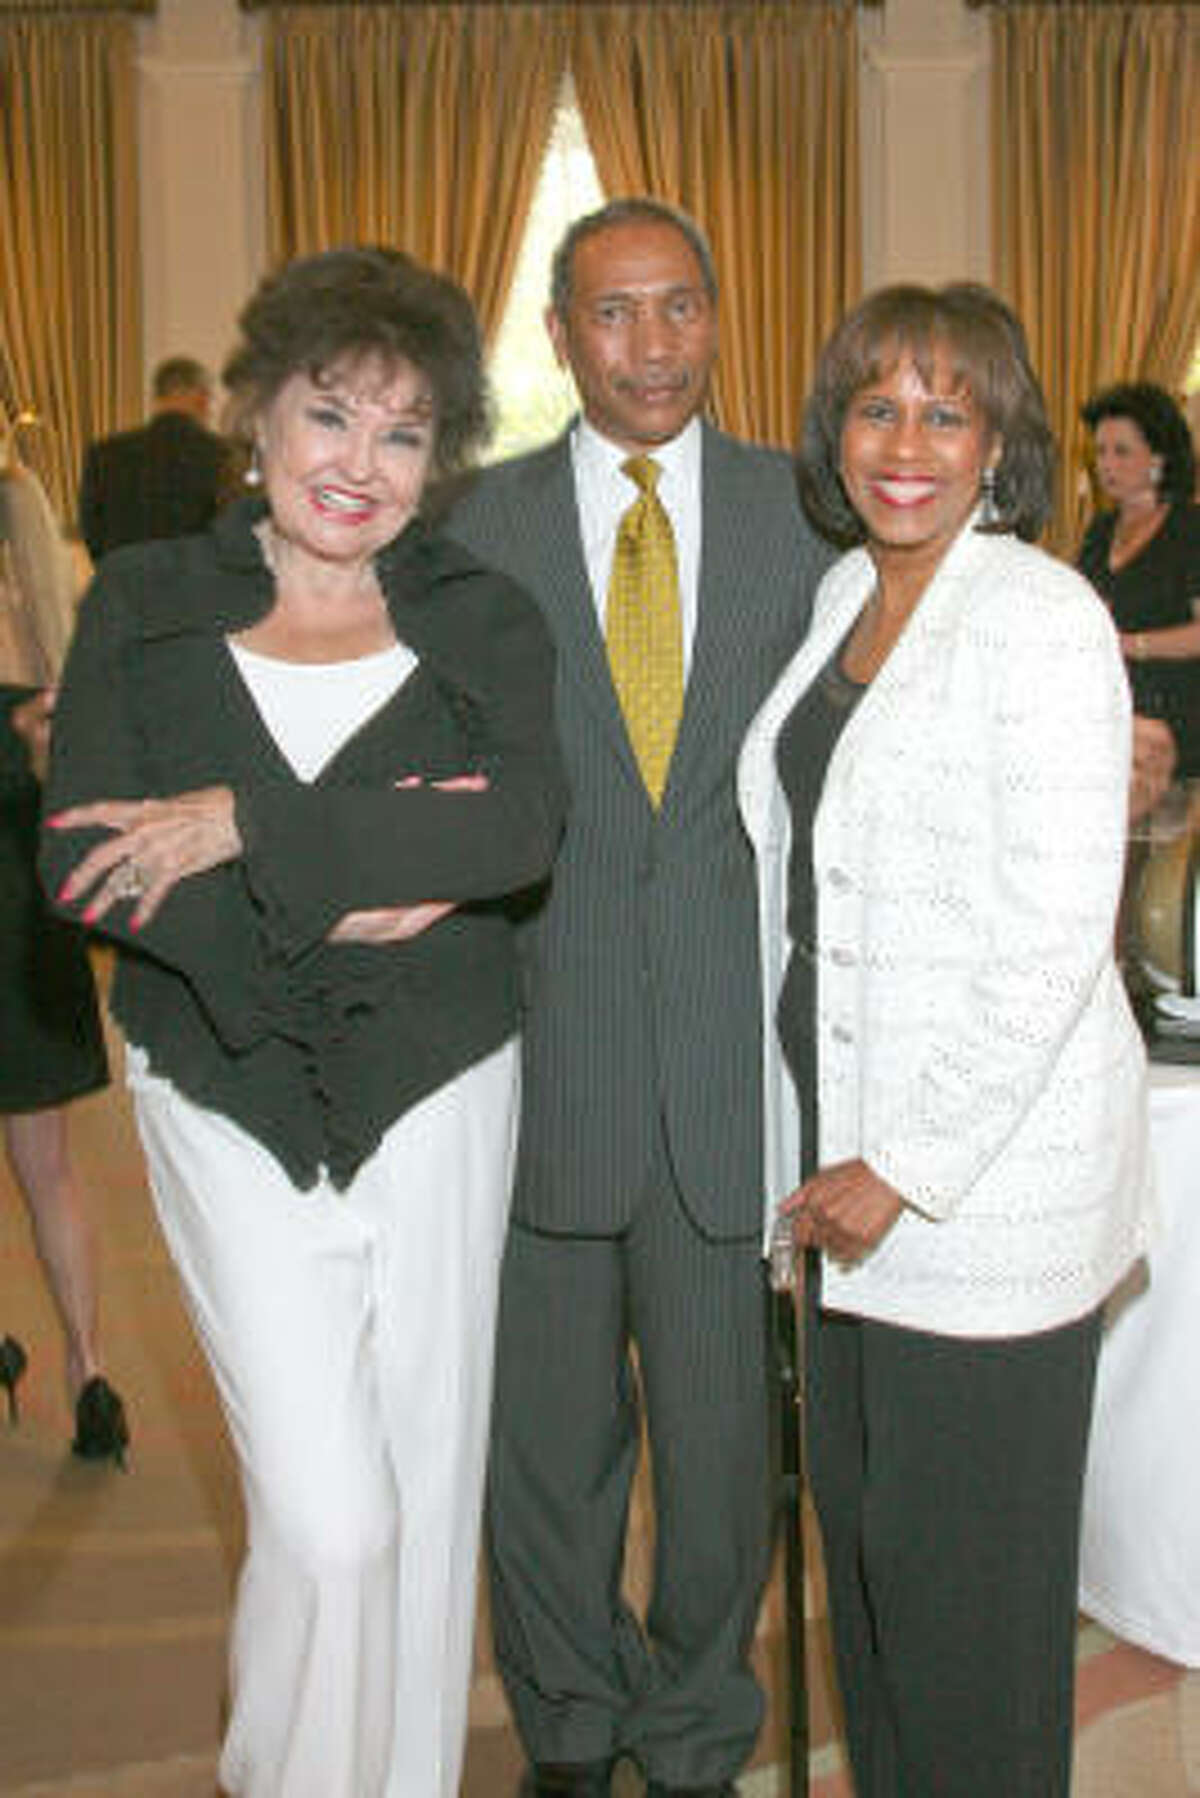 Emcee Warner Roberts with John Guess Jr. and honorary chair Melanie Lawson